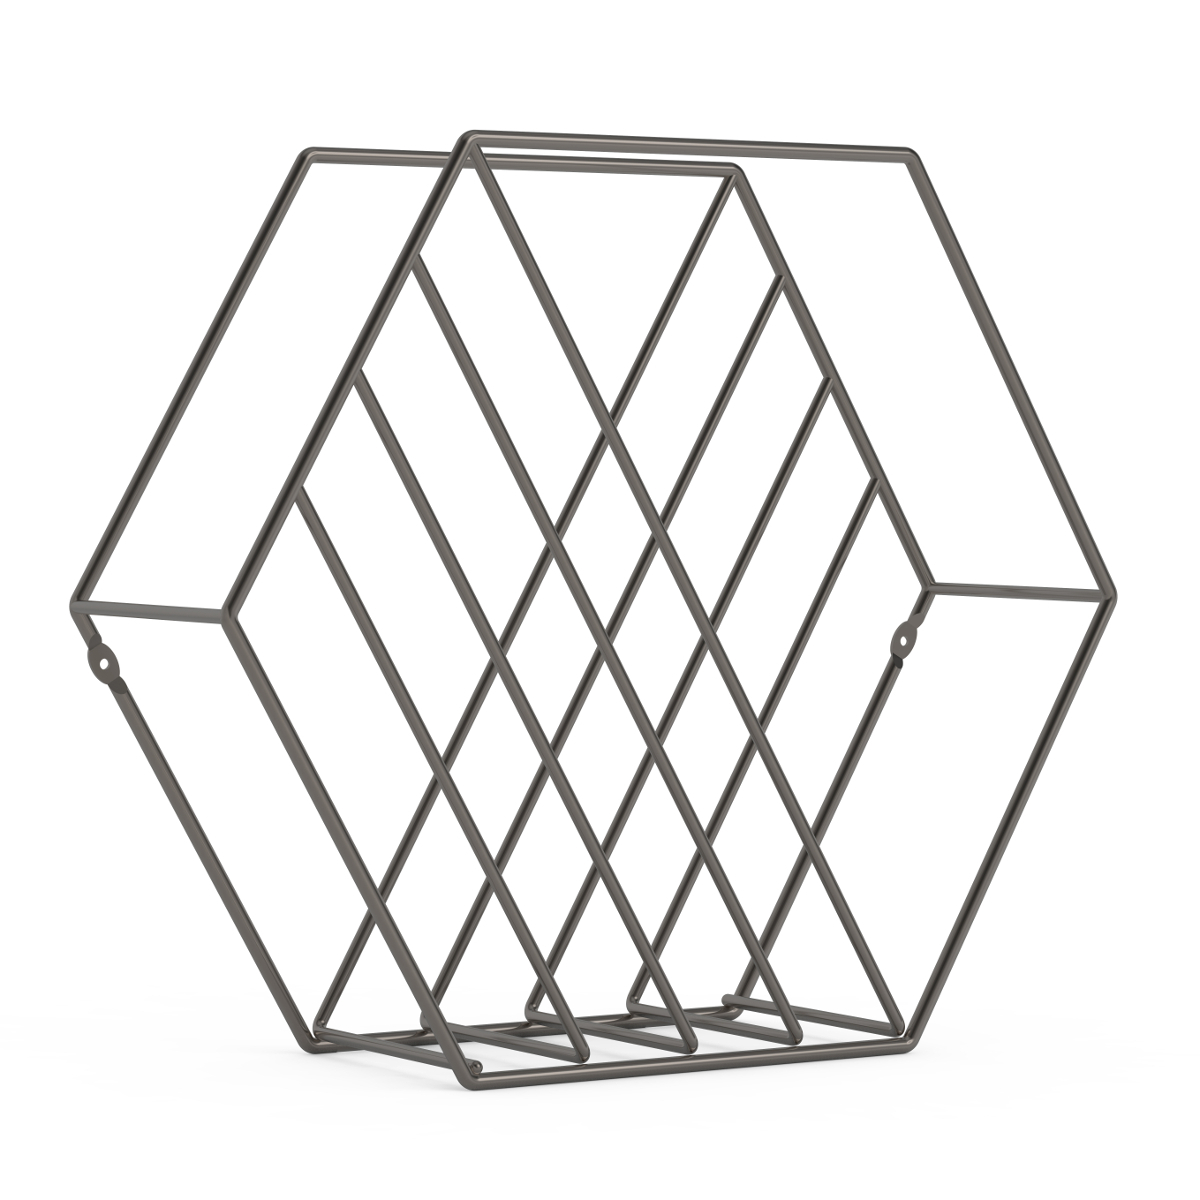 Image of   Design magasin rack fra Umbra